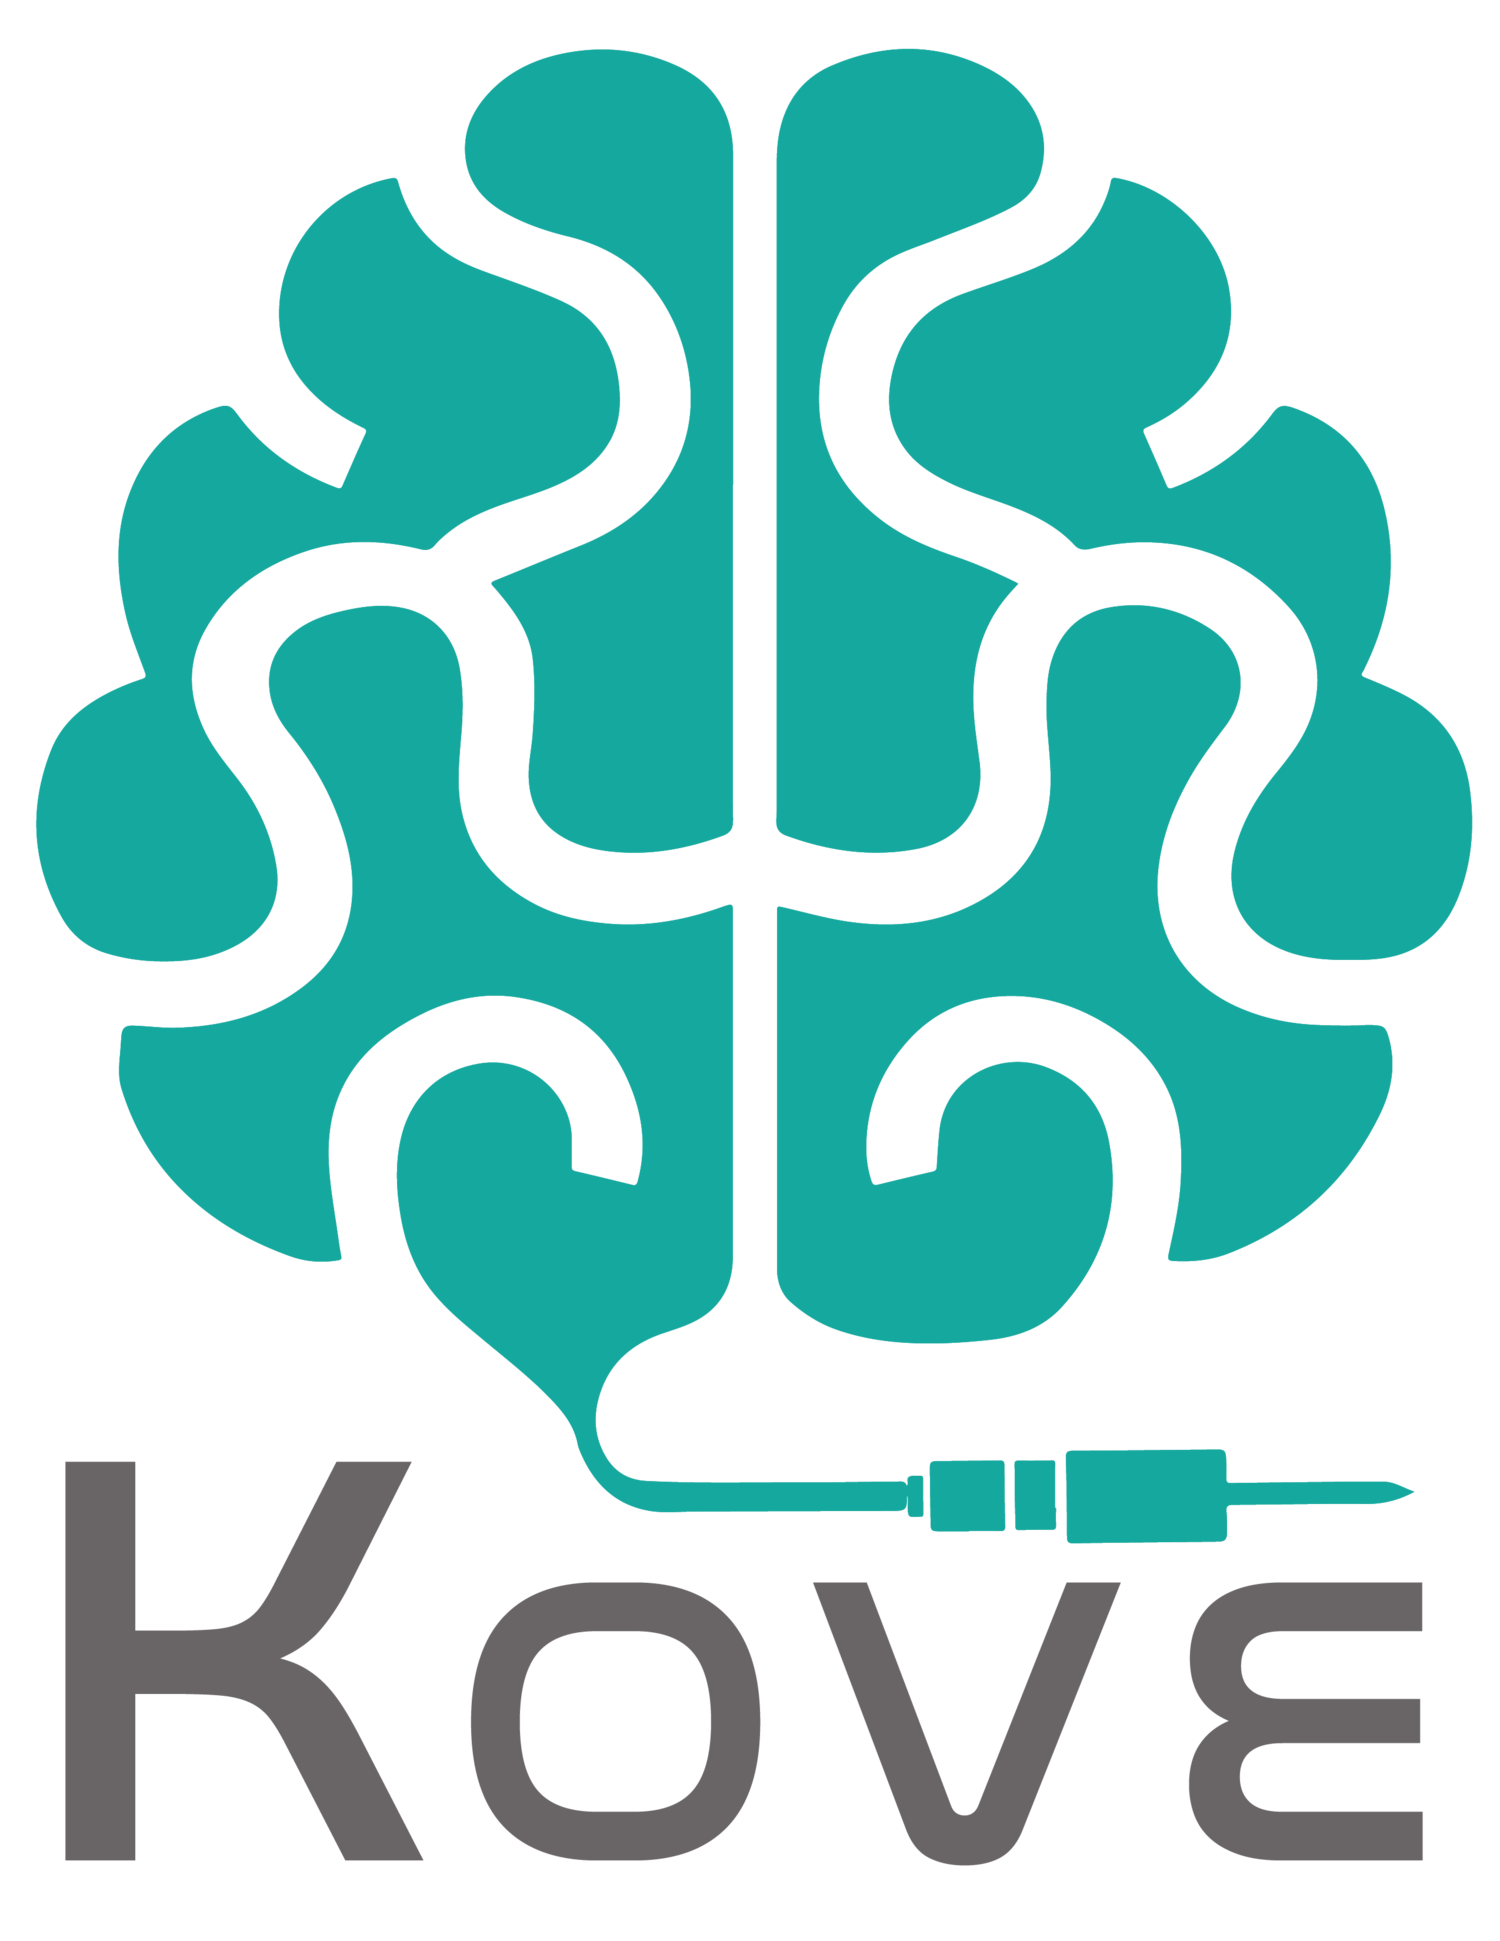 Kove-Kove | Online marketing & SEO para tus projectos